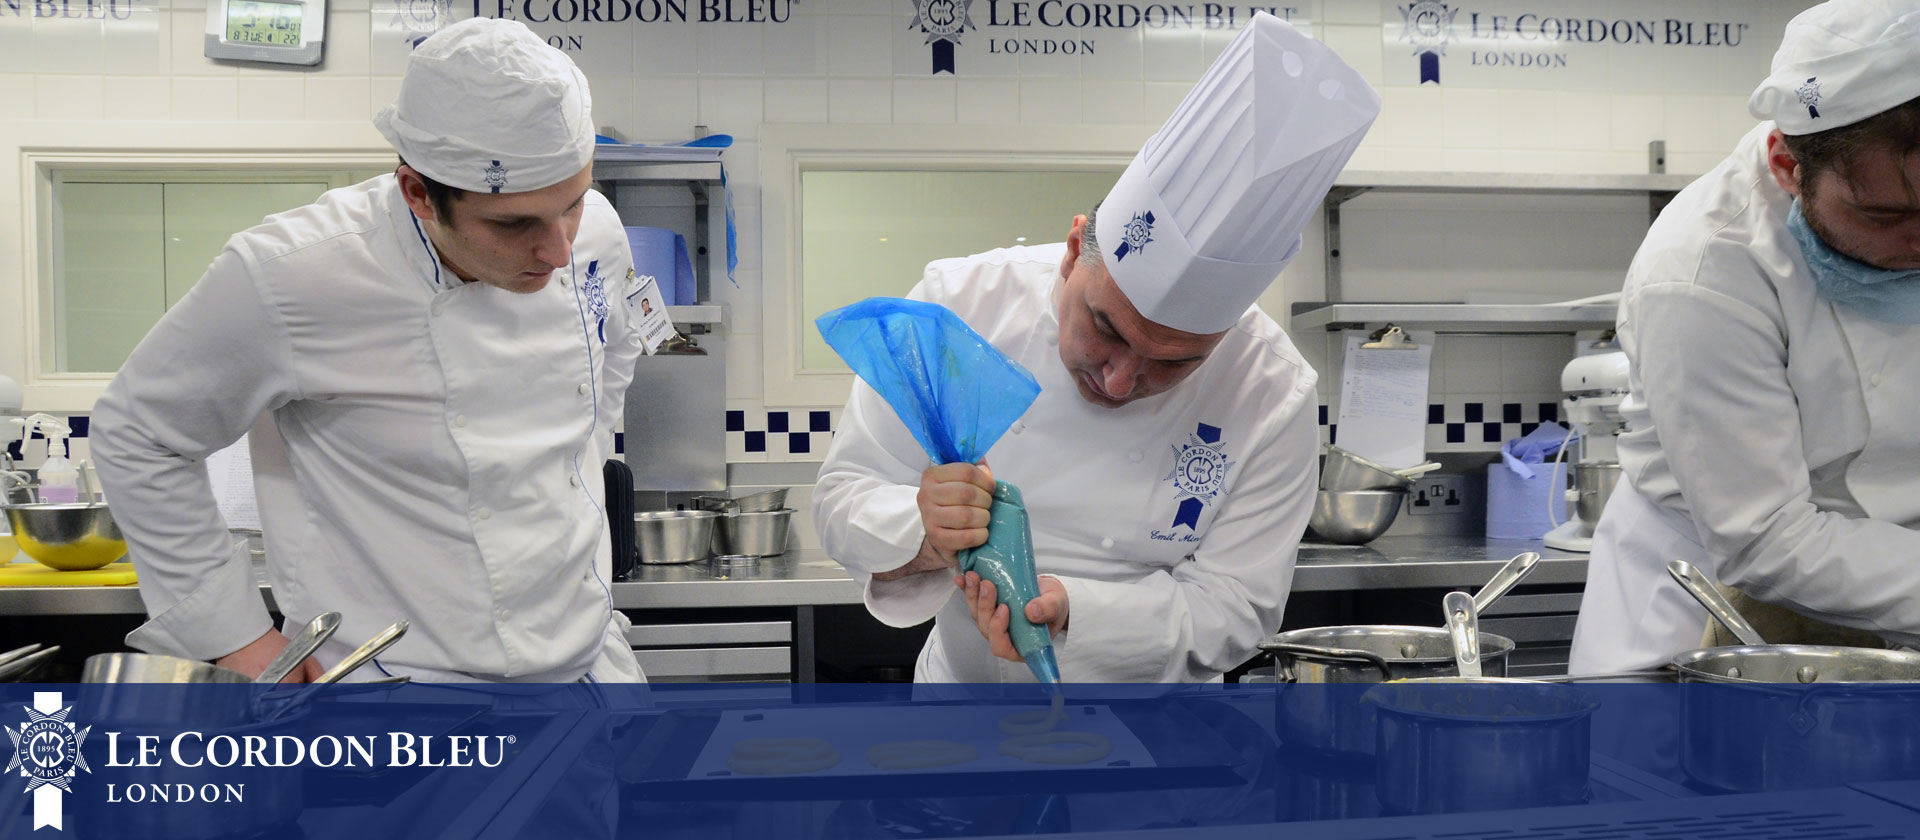 Cuisine Chef Colin Barnett - Le Cordon Bleu London